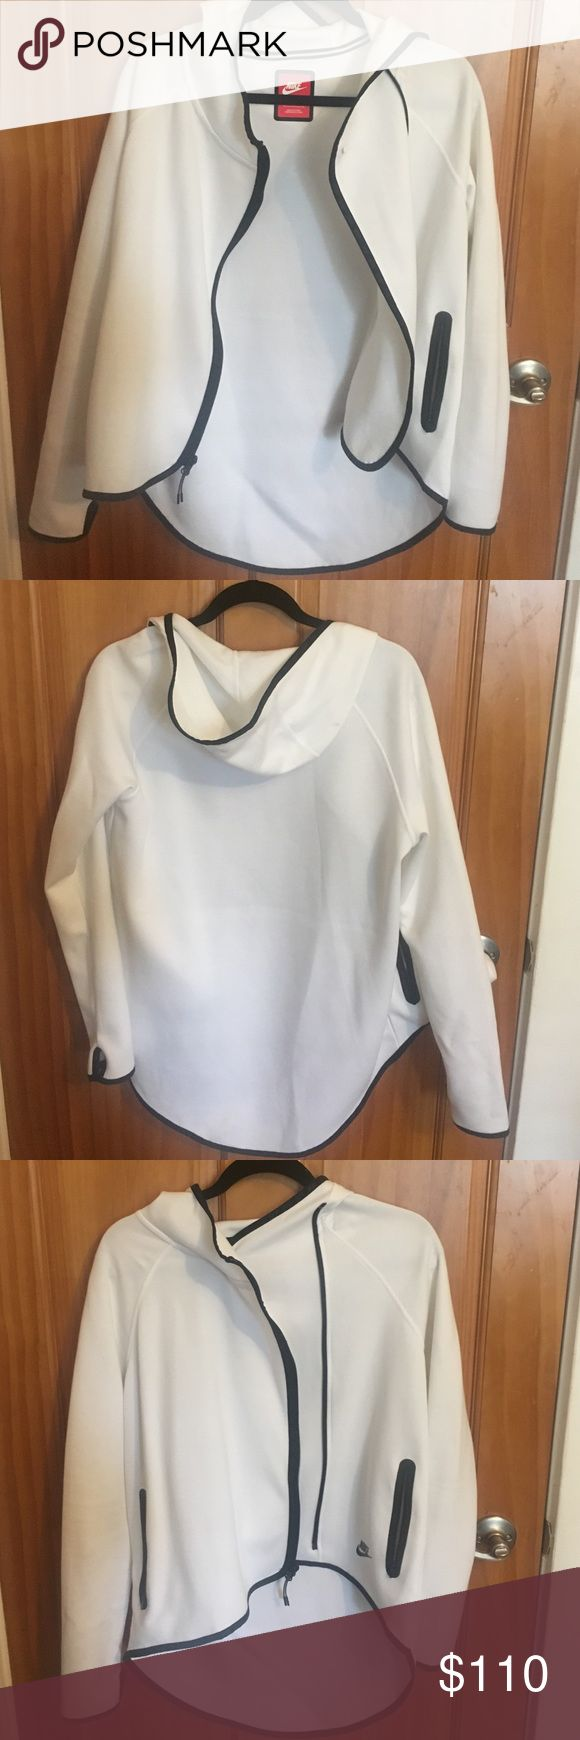 Nike Sports jacket Super chic, cool, loose fitting Nike jacket. Longer in the back. Thumb holes for when it gets cold. Zips in the front or you can button the top and keep the bottom open. Excellent condition!!! Nike Jackets & Coats